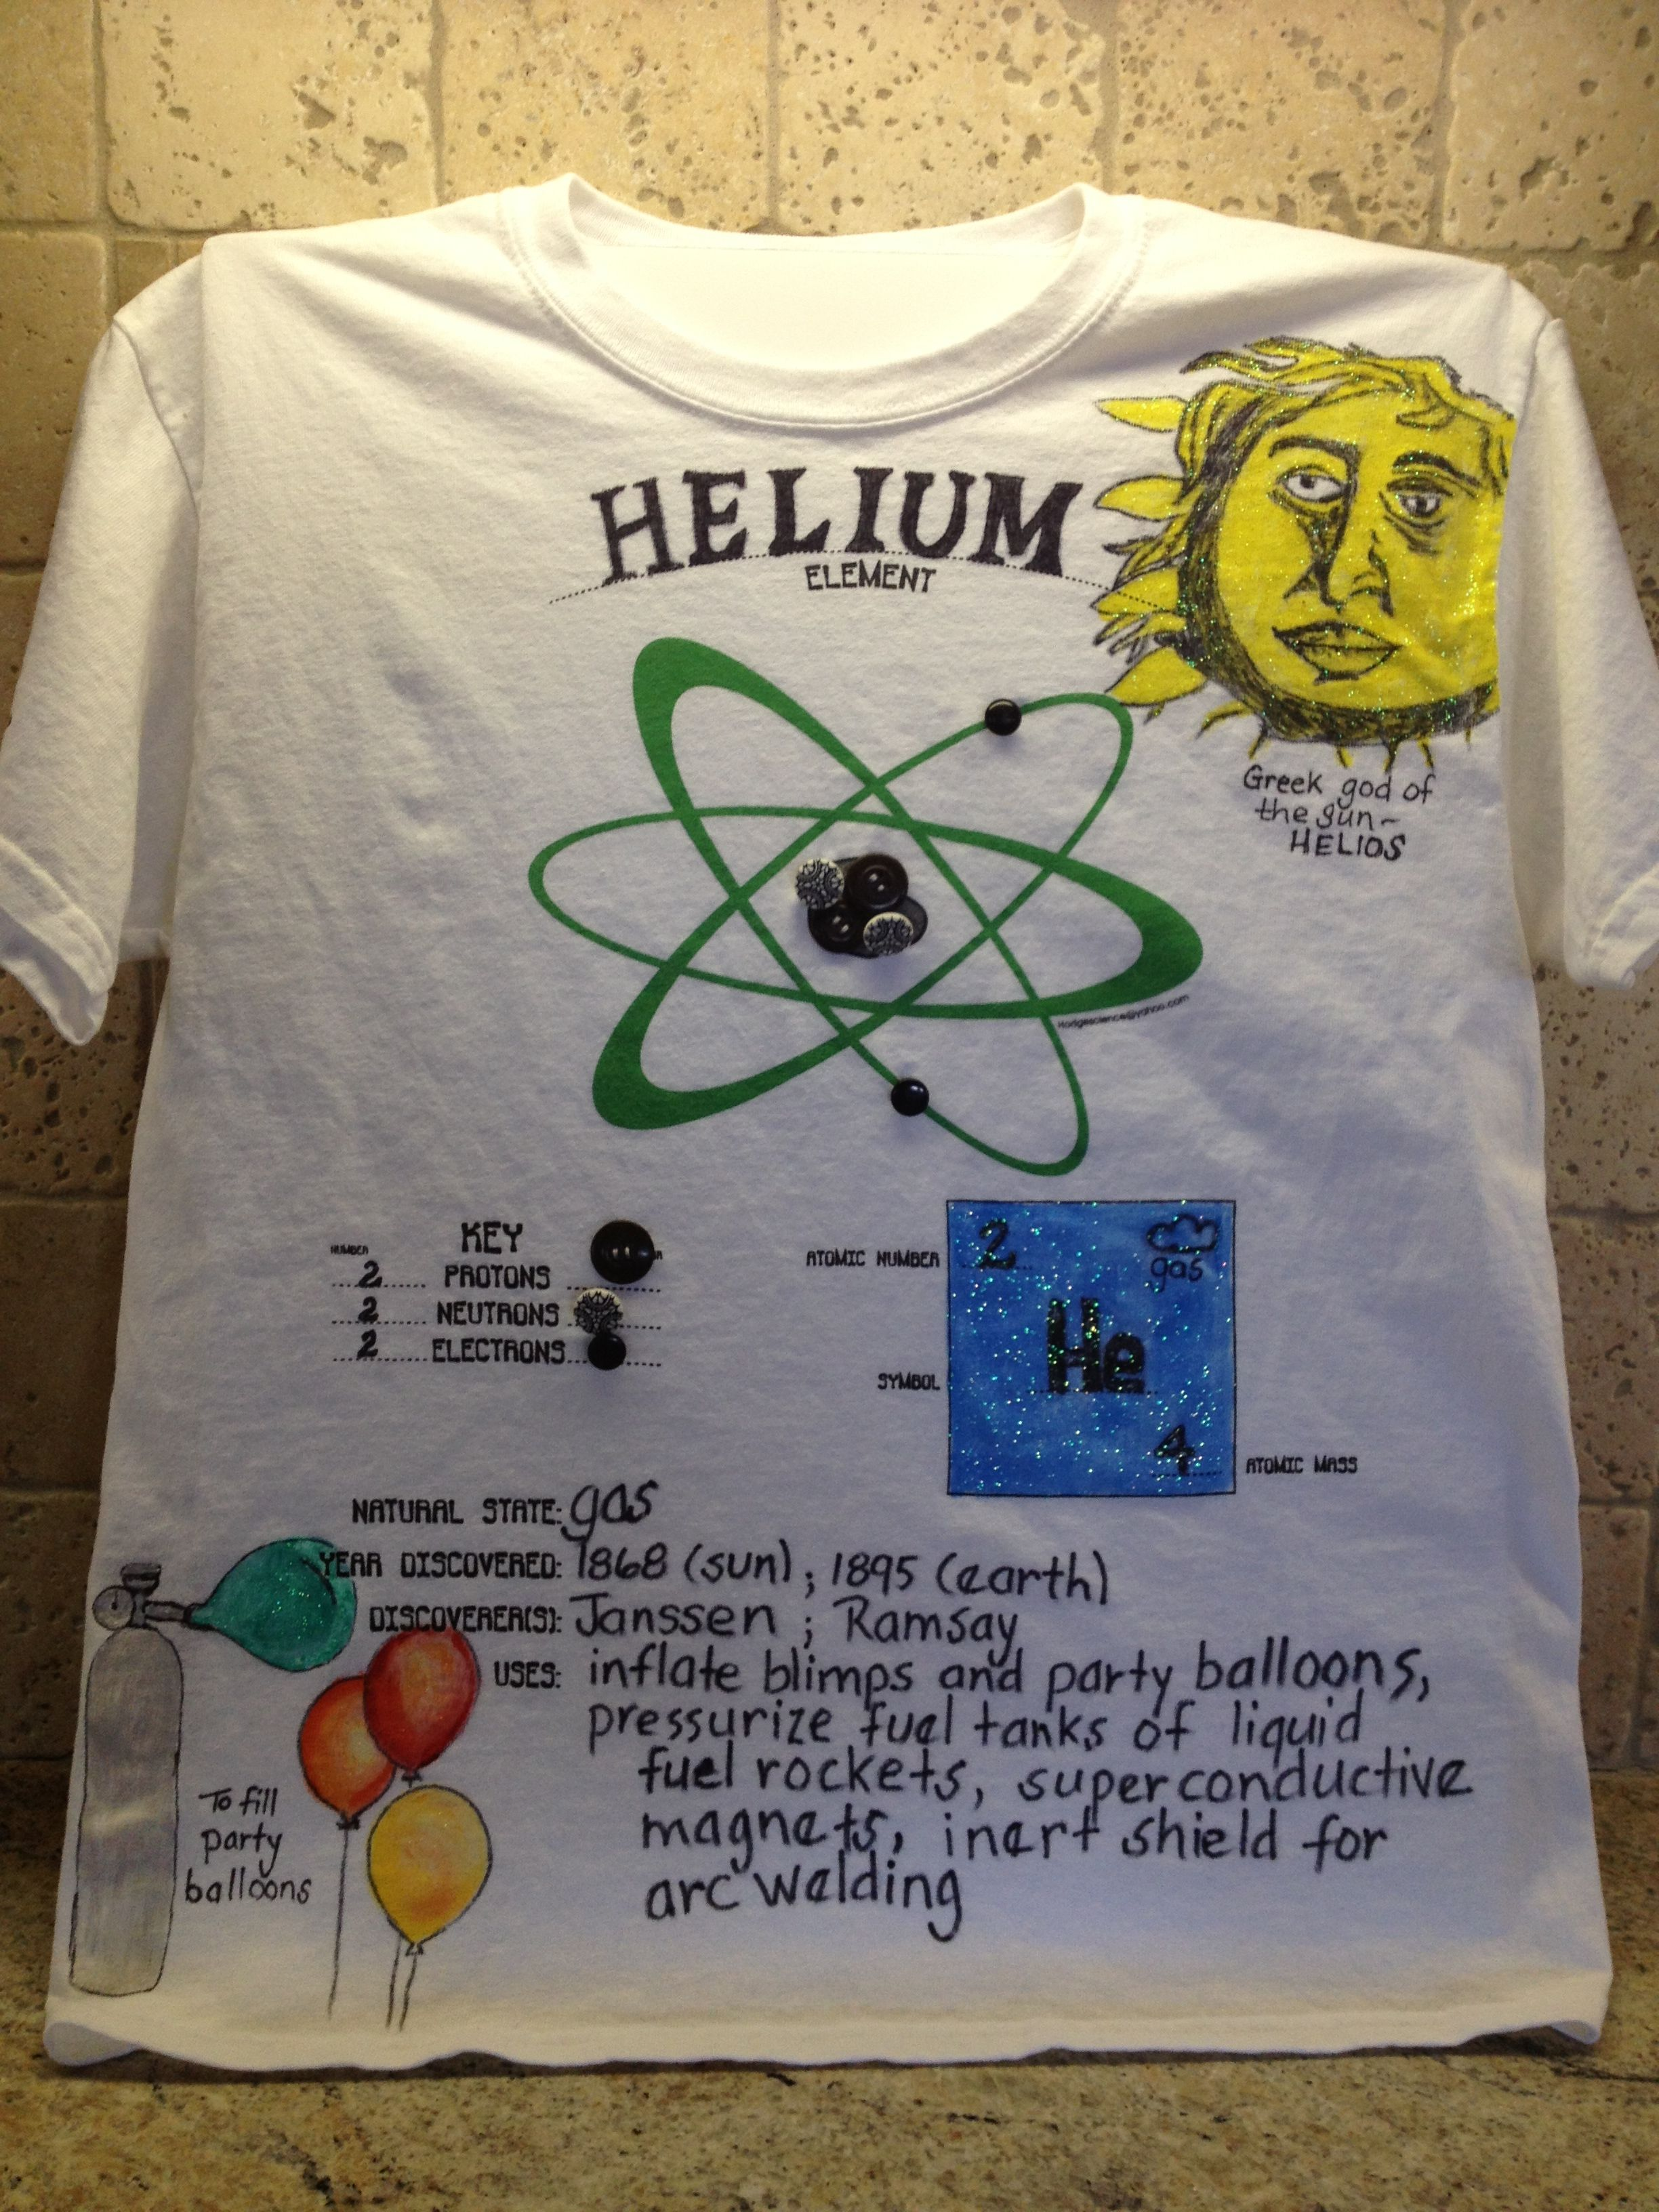 Students create individualized t shirts featuring an element from students create individualized t shirts featuring an element from the periodic table ordering information for shirts and organizational strategies on this urtaz Image collections